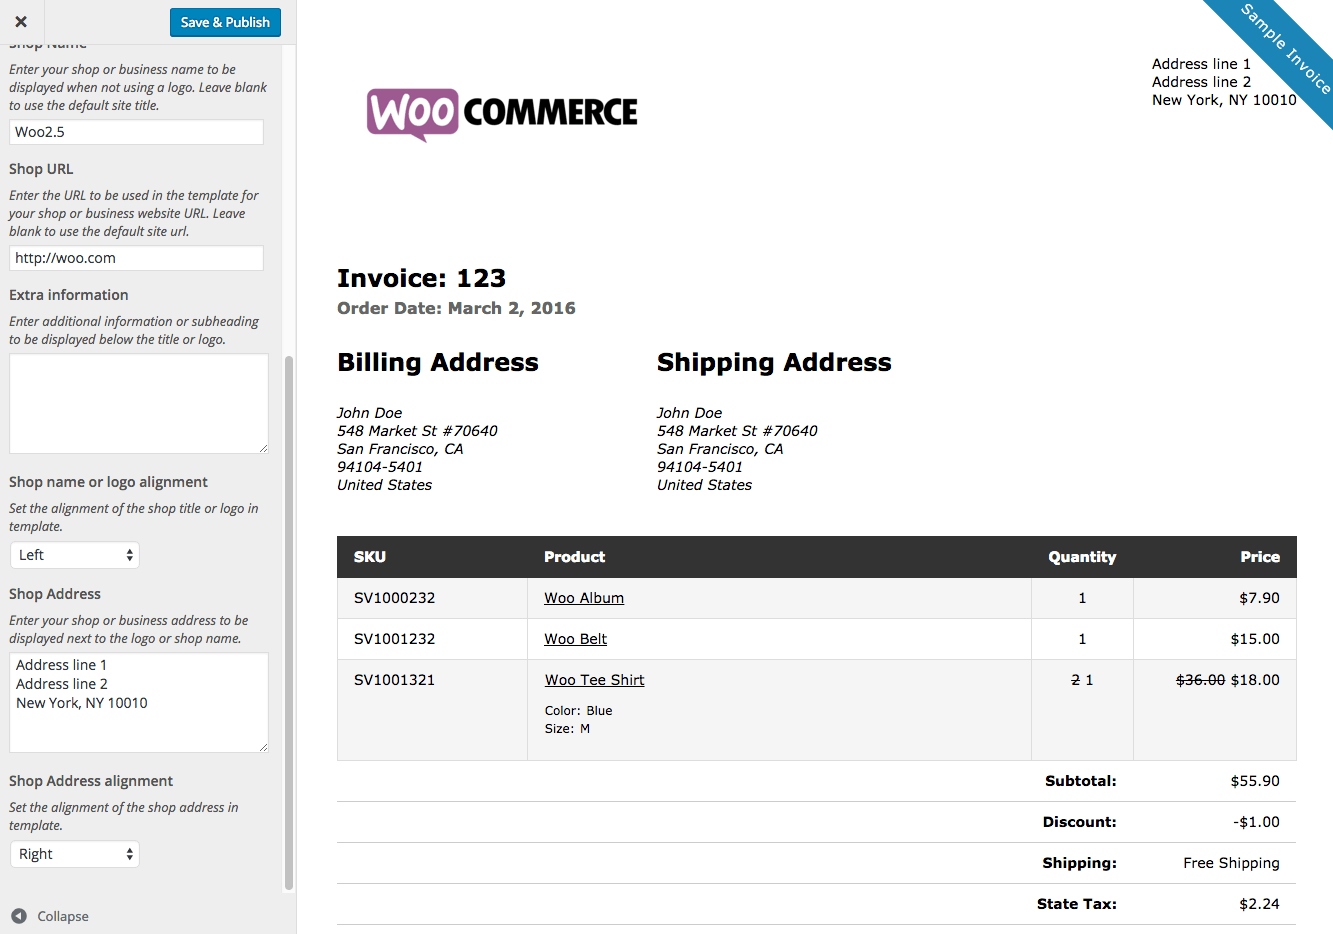 Usdgus  Remarkable Print Invoices Amp Packing Lists  Woocommerce With Entrancing Woocommerce Print Invoices  Packing Lists Customizer With Comely Beginning Cash Balance Plus Total Receipts Also Read Receipt Imessage In Addition Sears Return Without Receipt And Fake Hotel Receipt As Well As Rent Receipt Example Additionally Sears No Receipt Return Policy From Woocommercecom With Usdgus  Entrancing Print Invoices Amp Packing Lists  Woocommerce With Comely Woocommerce Print Invoices  Packing Lists Customizer And Remarkable Beginning Cash Balance Plus Total Receipts Also Read Receipt Imessage In Addition Sears Return Without Receipt From Woocommercecom